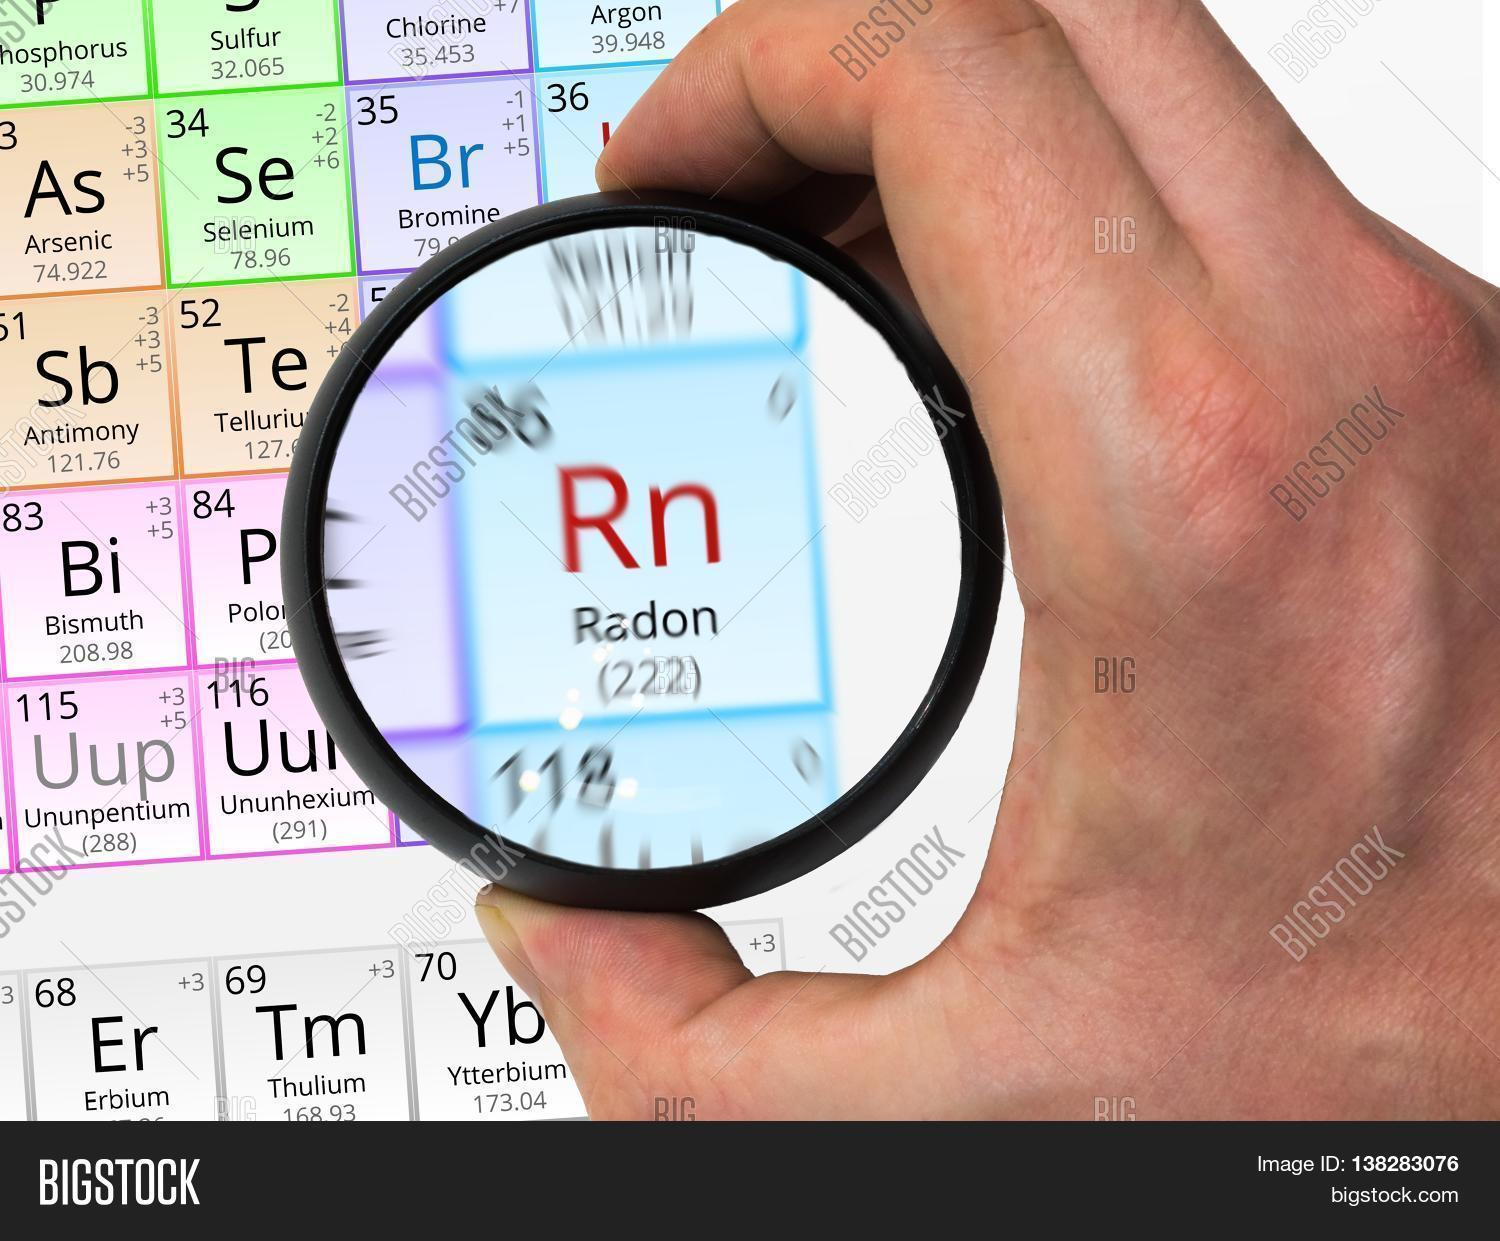 Radon symbol rn element periodic image photo bigstock radon symbol rn element of the periodic table zoomed with mag gamestrikefo Images